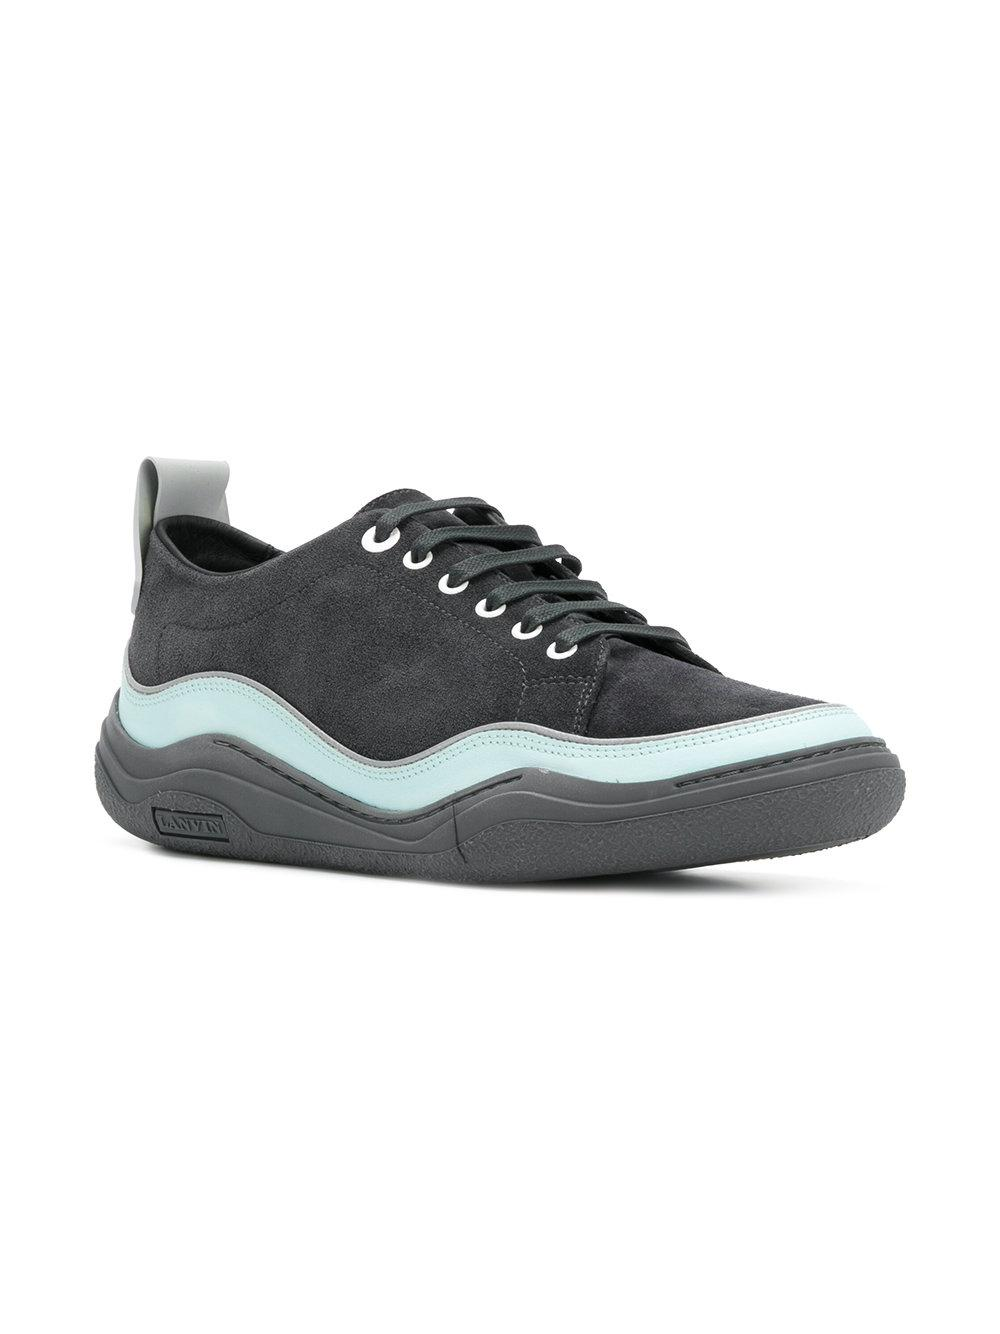 textured runner sneakers - Blue Lanvin